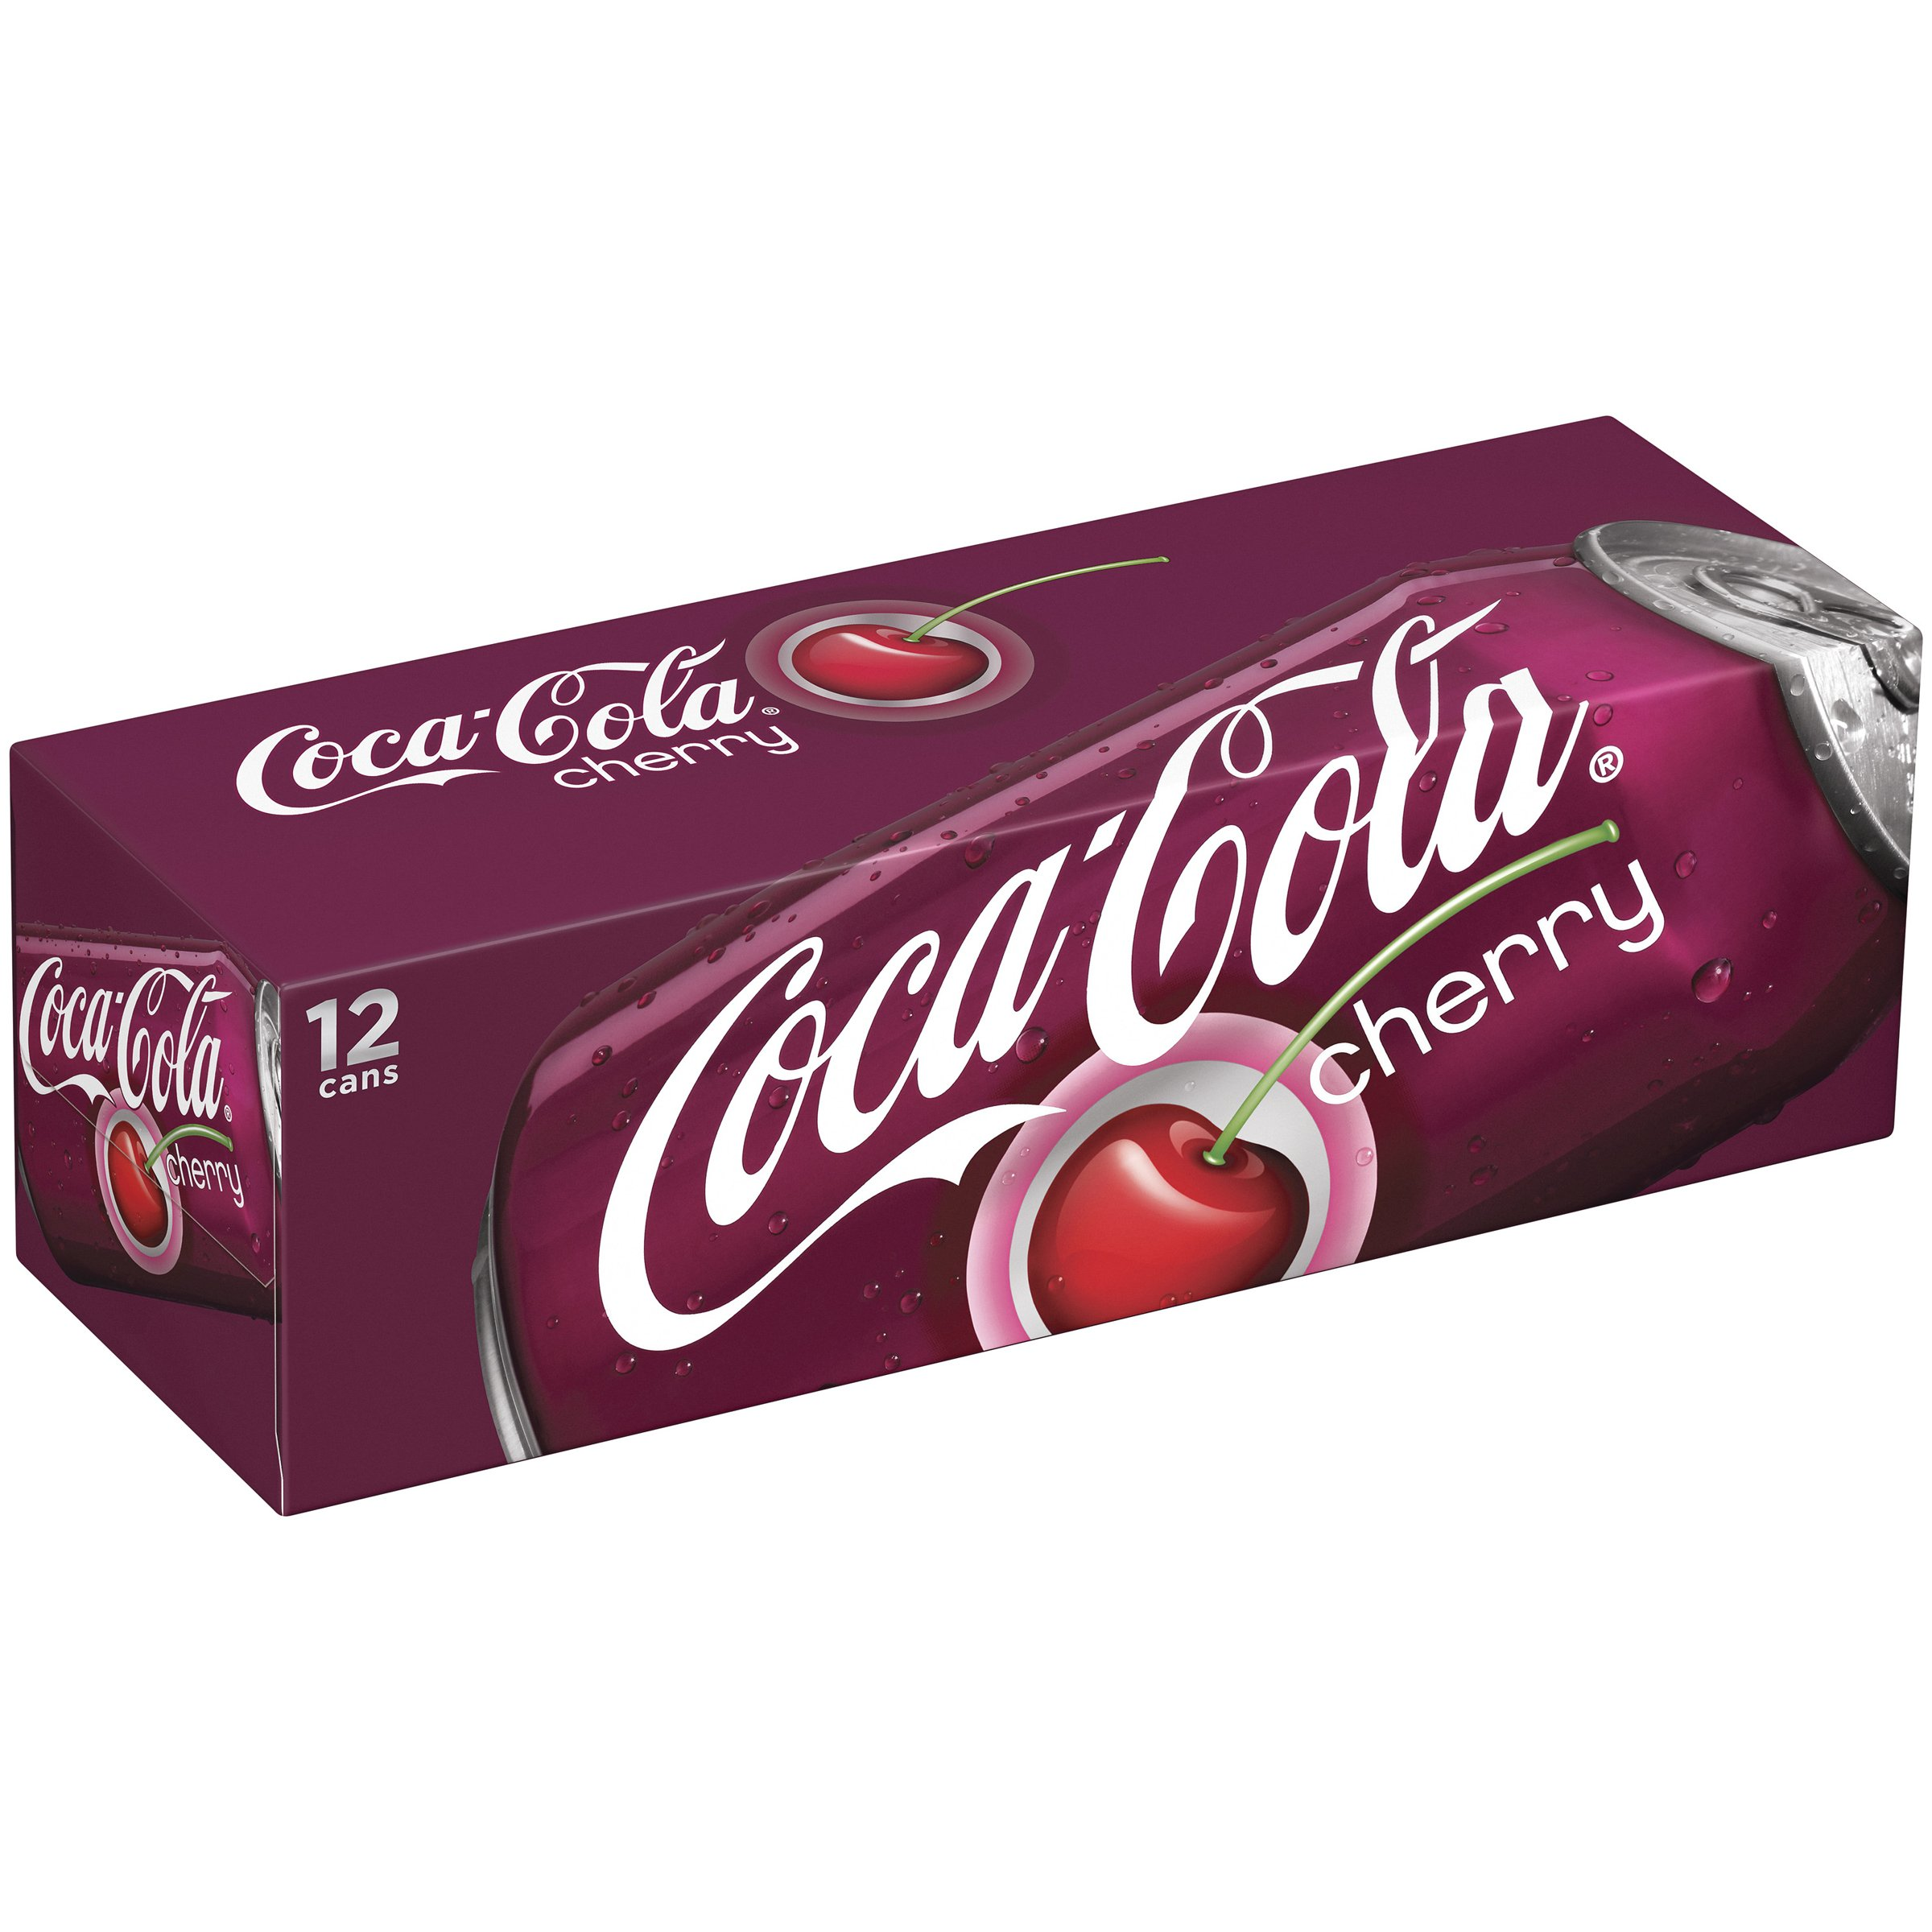 Coca Cola Cherry Coke, 12-Ounce (Pack of 24)